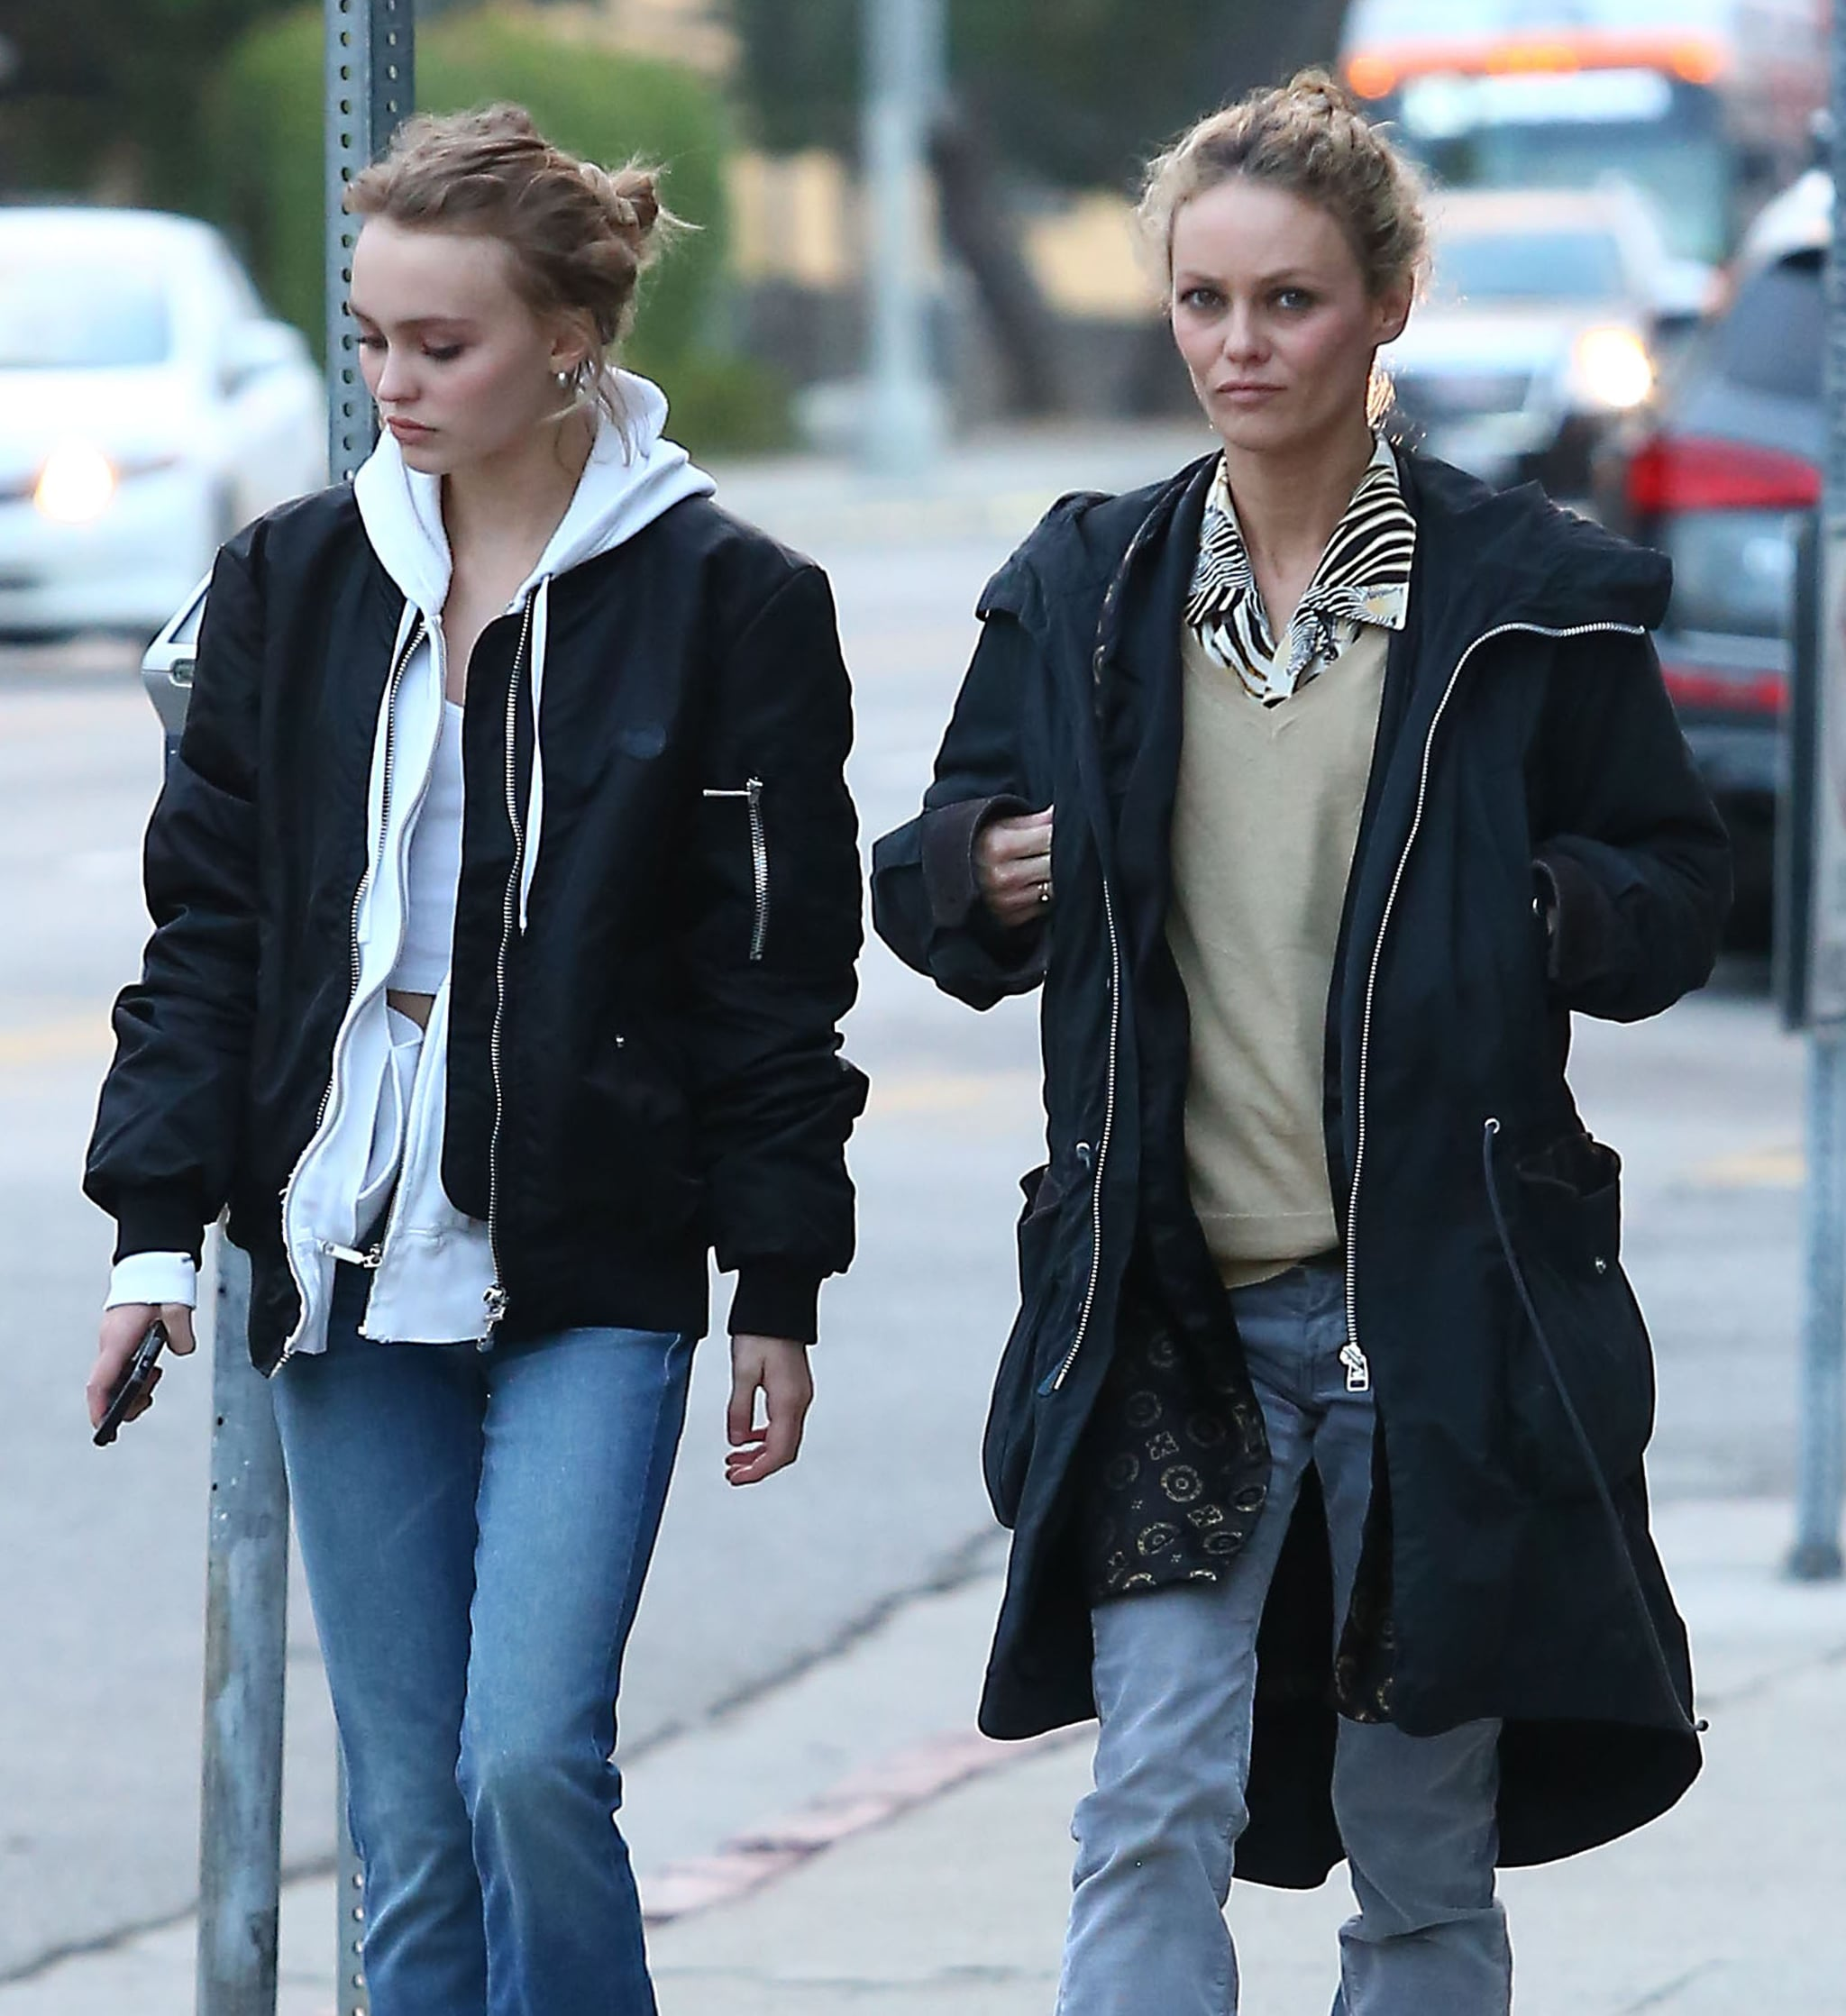 Vanessa Paradis and Lily-Rose Depp Shopping in LA 2016 | POPSUGAR Celebrity